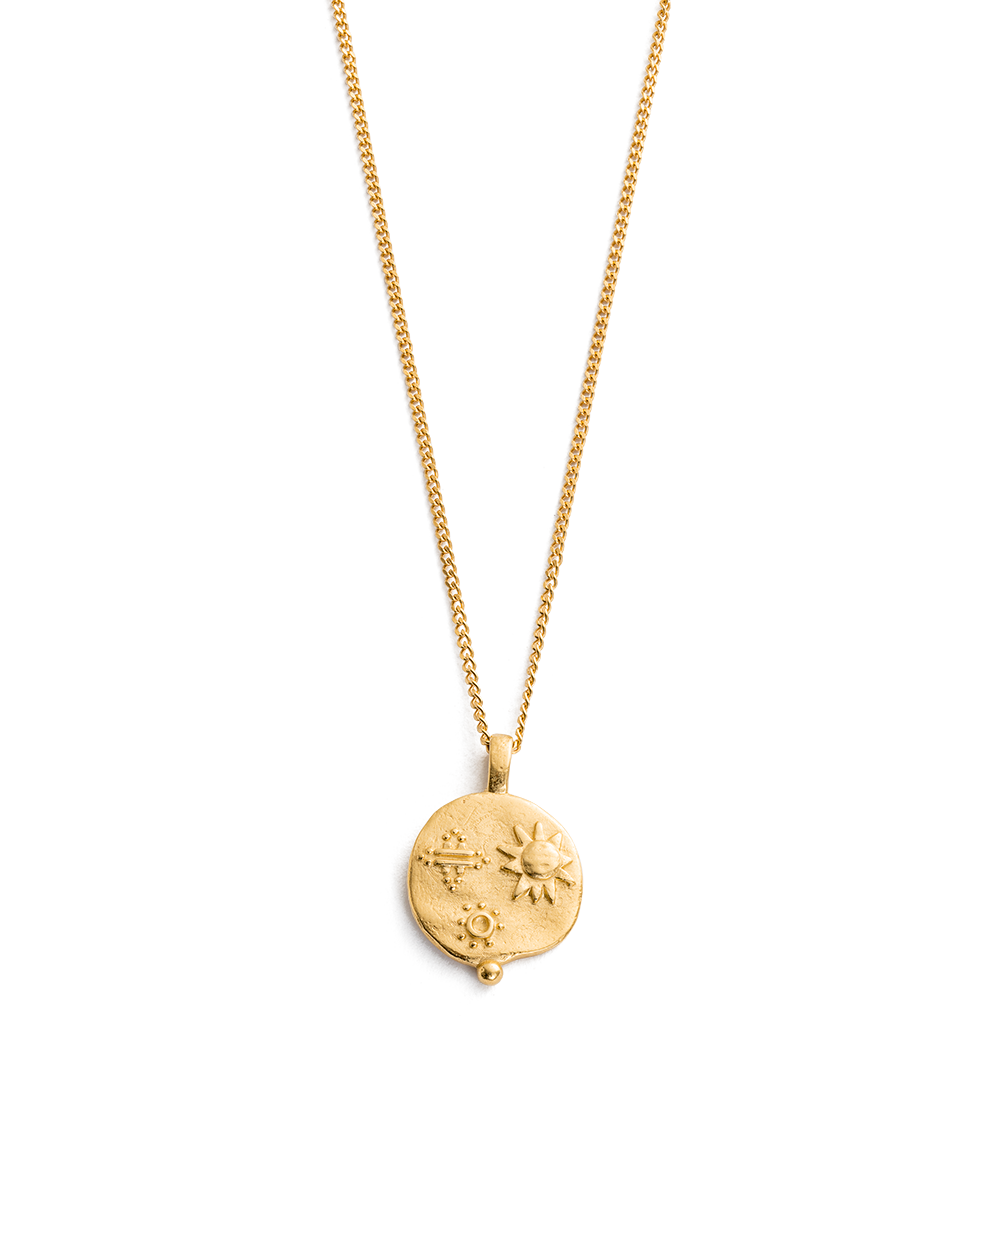 DESERT-SUN-COIN-NECKLACE-18K-GOLD-VERMEIL-01